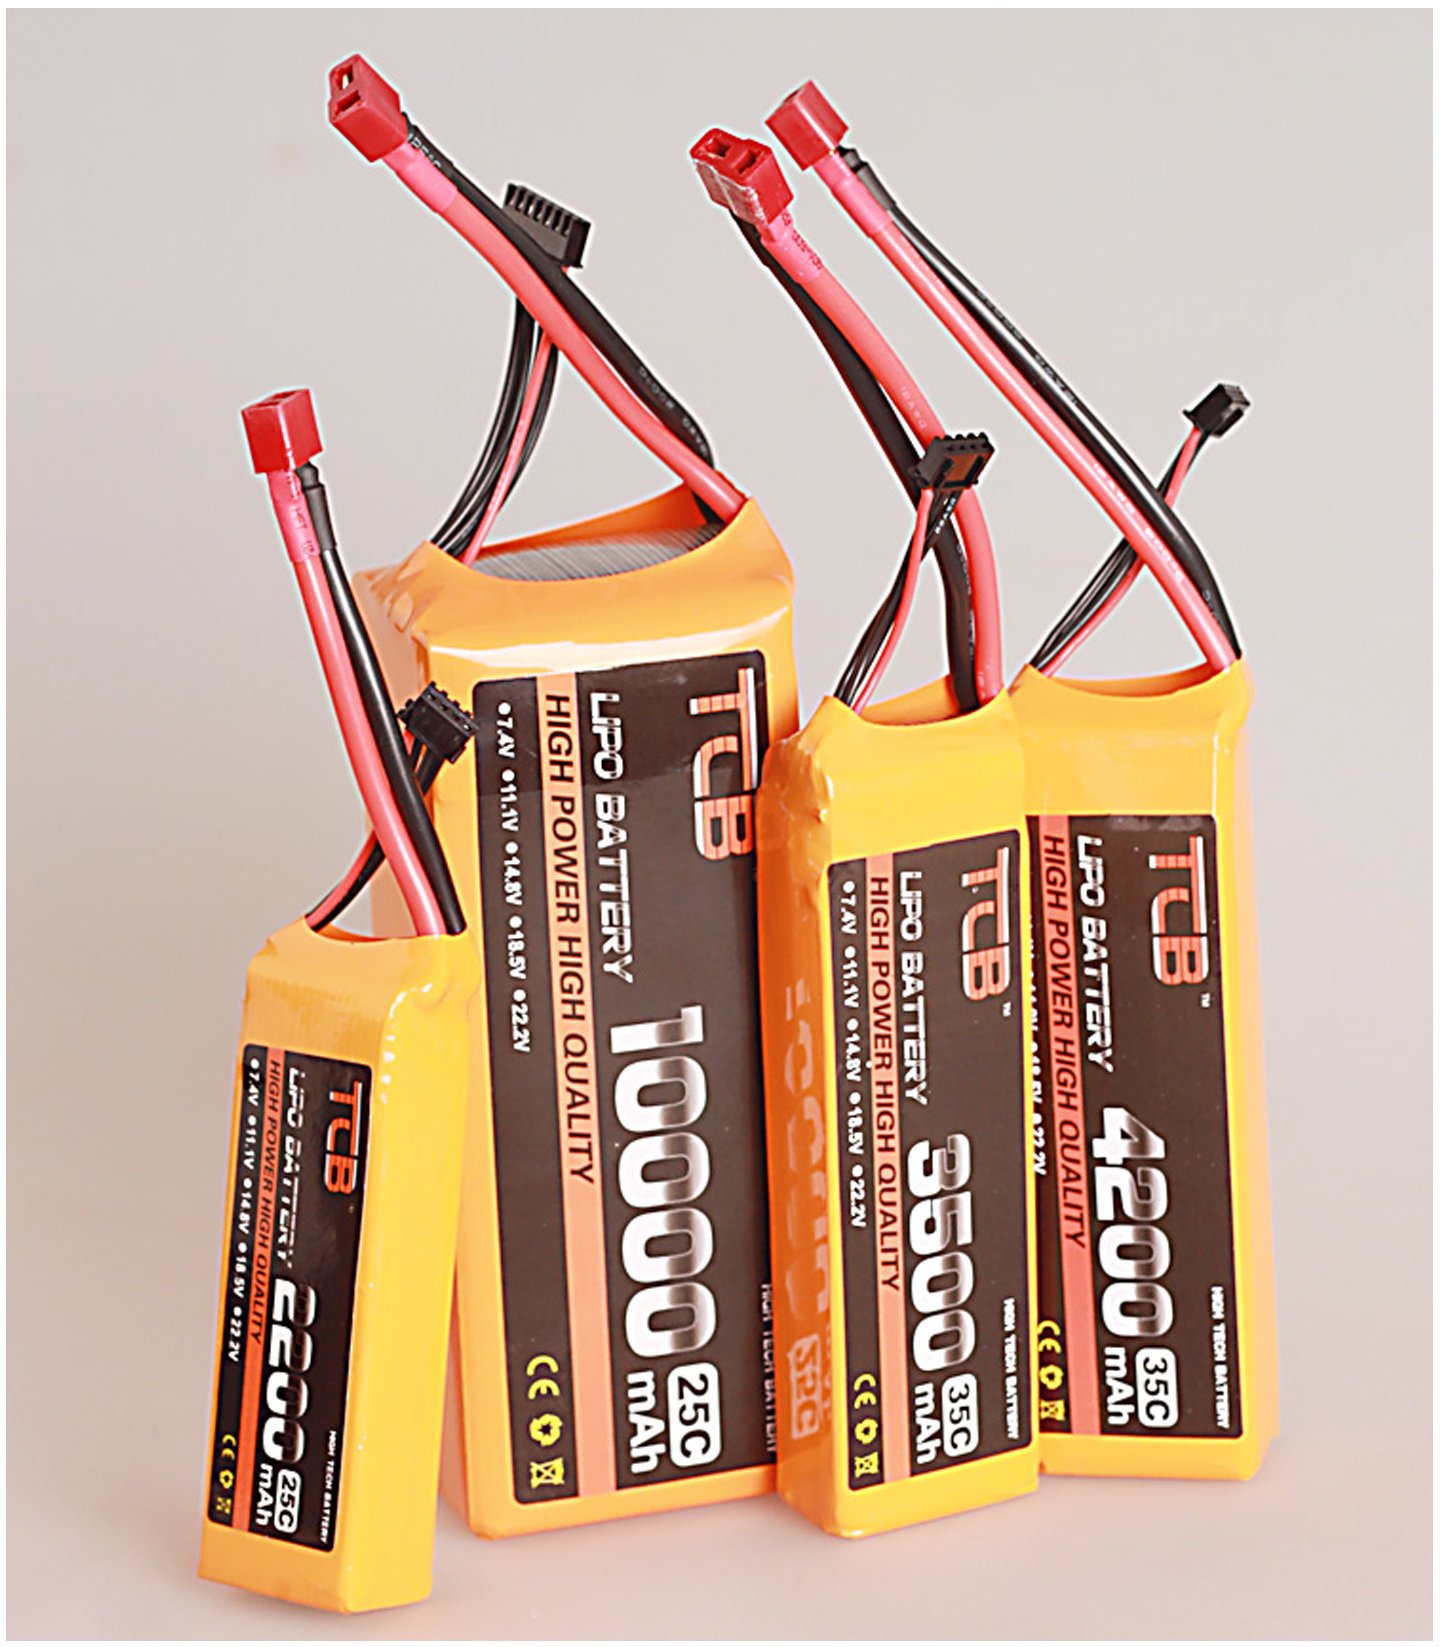 TCB RC <font><b>LiPo</b></font> Battery <font><b>6s</b></font> 22.2v <font><b>2200mah</b></font> 2600mah 3500mah 4200mah 5200mah 10000mah 25C 35C for RC airplane car boat drone AKKU image